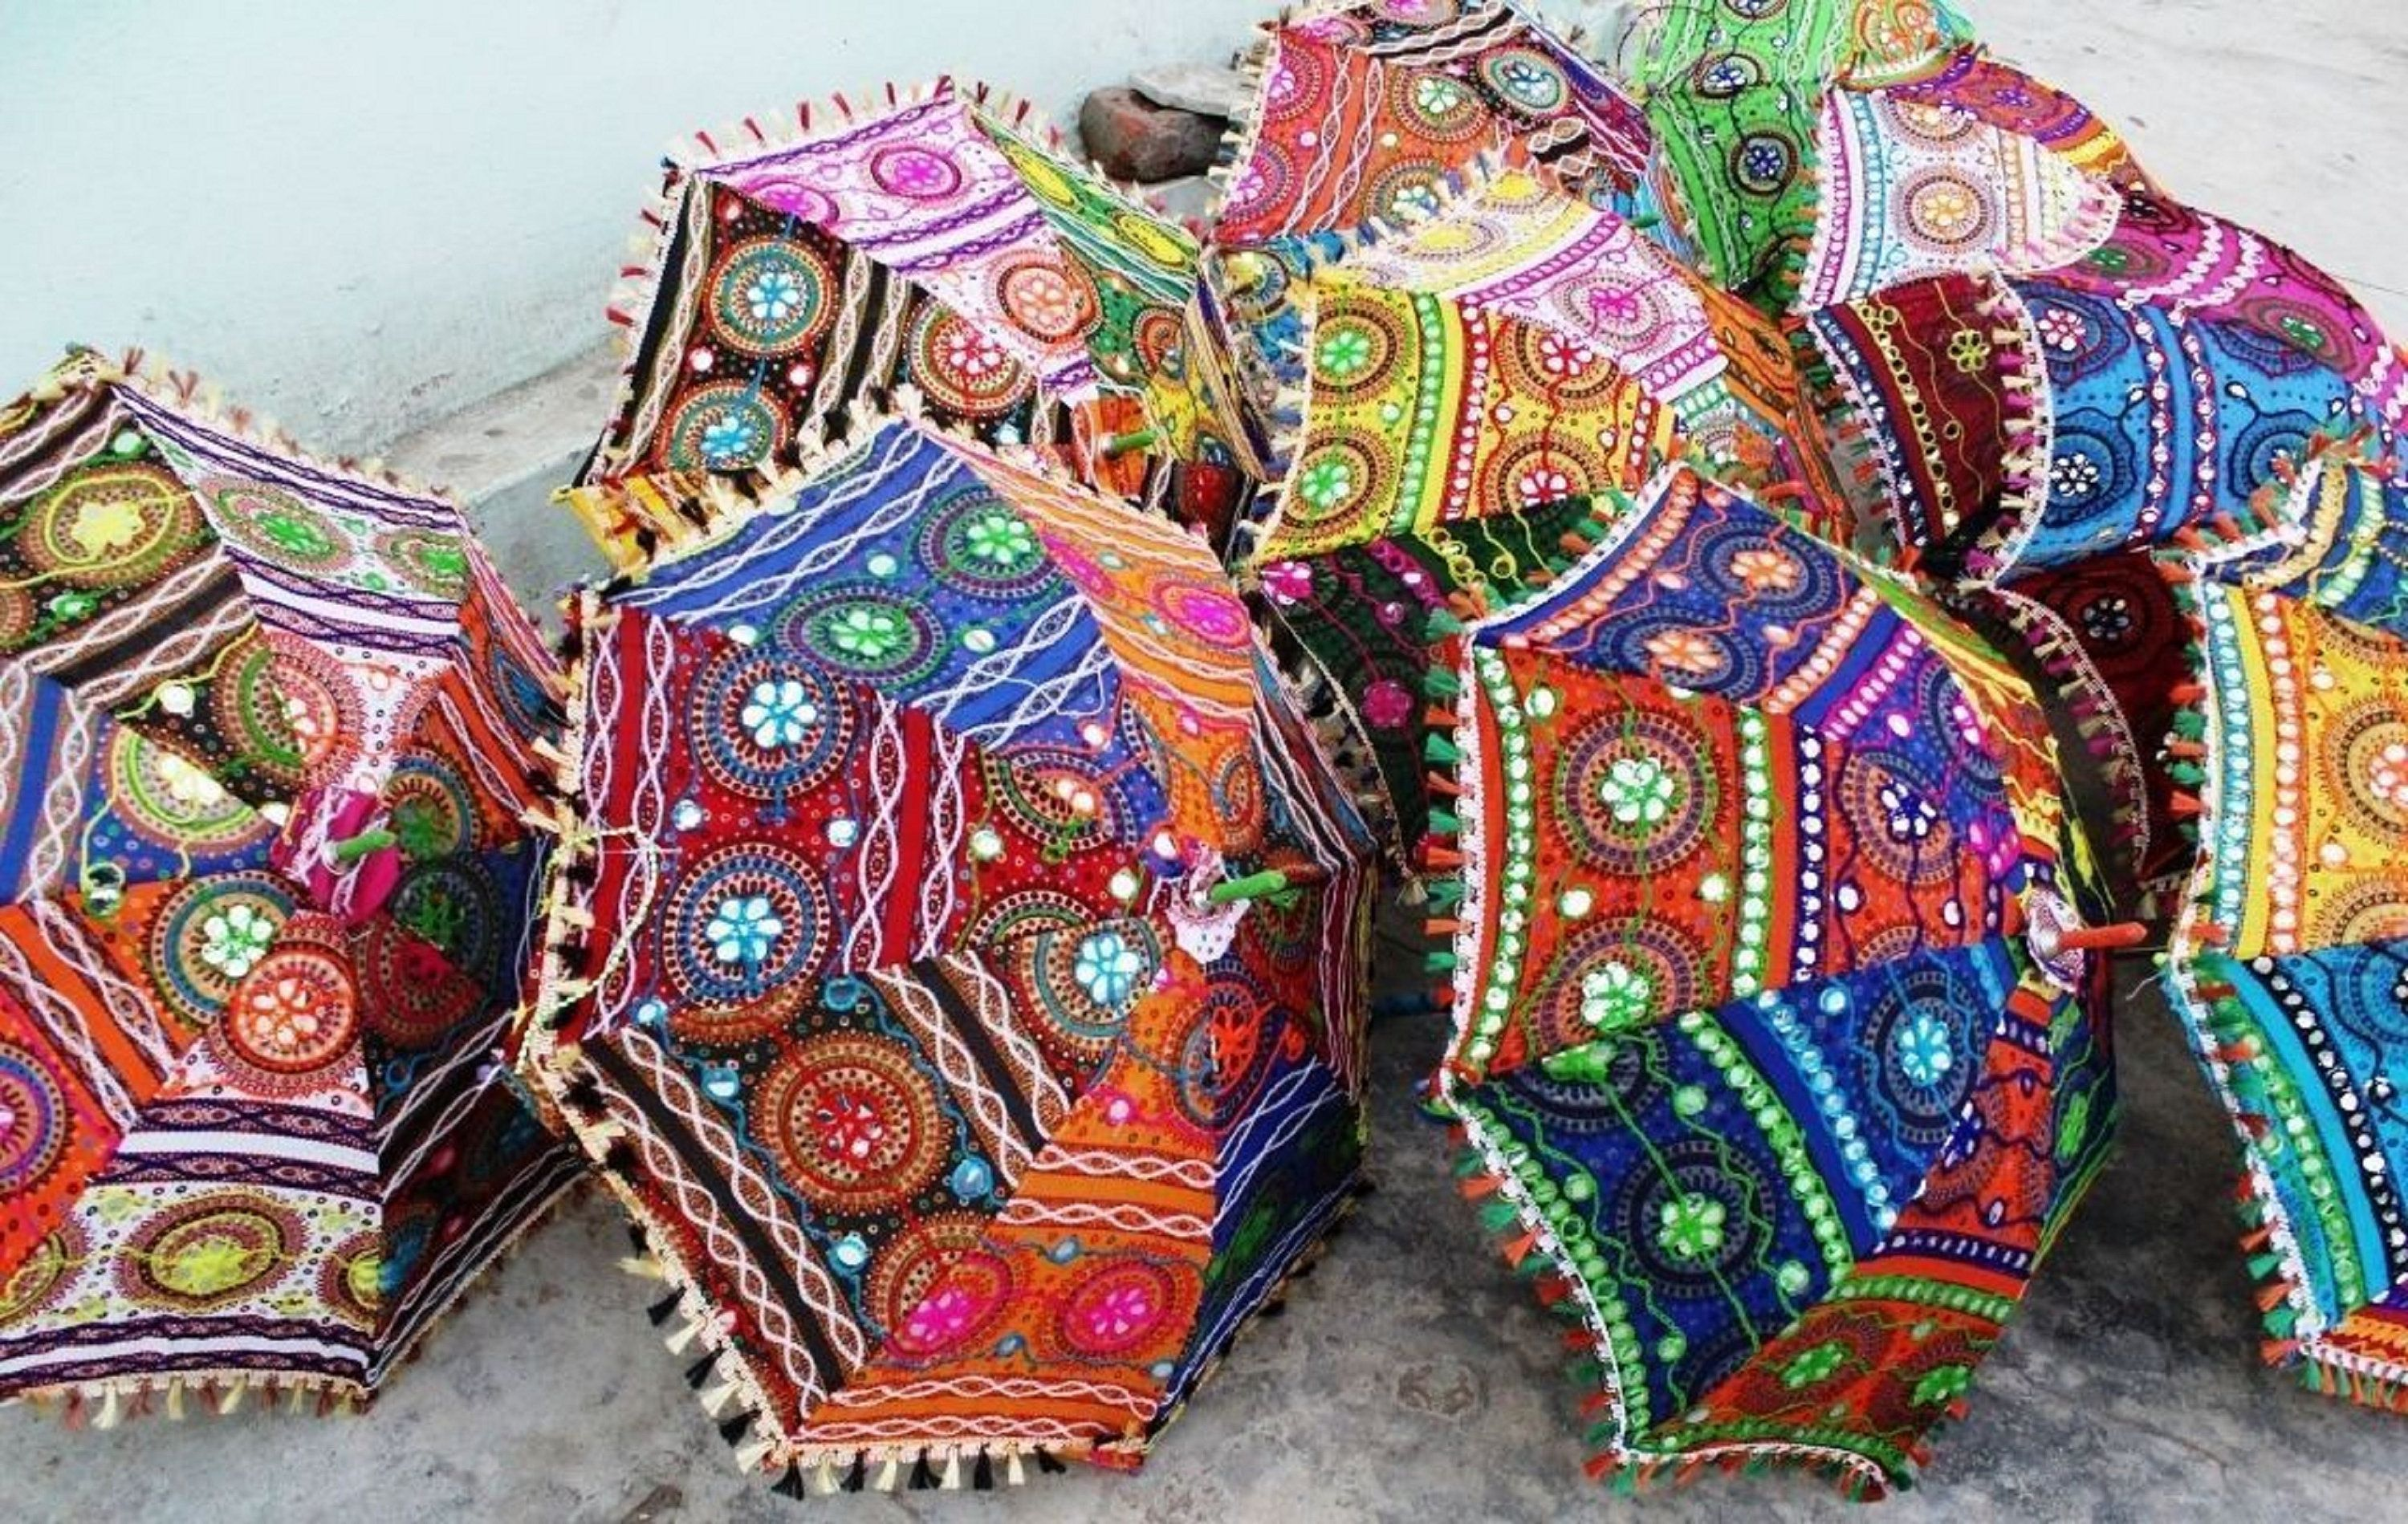 Handmade Patch work Fabric Mirror Work Embroidered Umbrella Colorful Ethnic Wholesale Lot Indian Traditional Designer Vintage